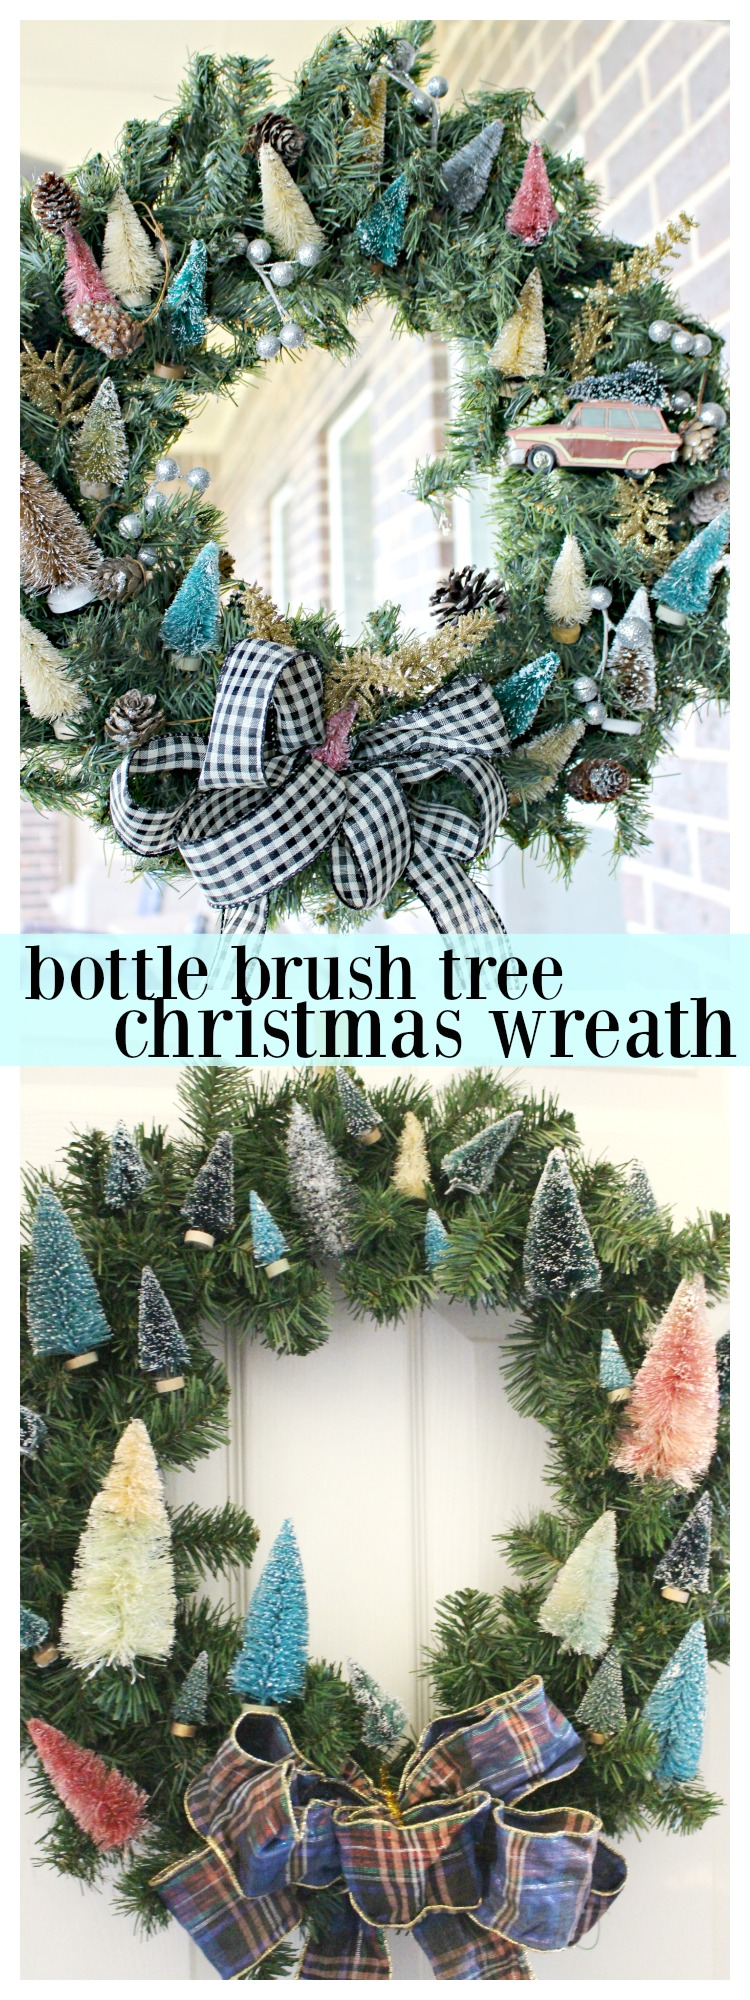 How to Make a Bottle Brush Tree Wreath for Your Christmas Decorations! #ChristmasCrafts #ChristmasWreath